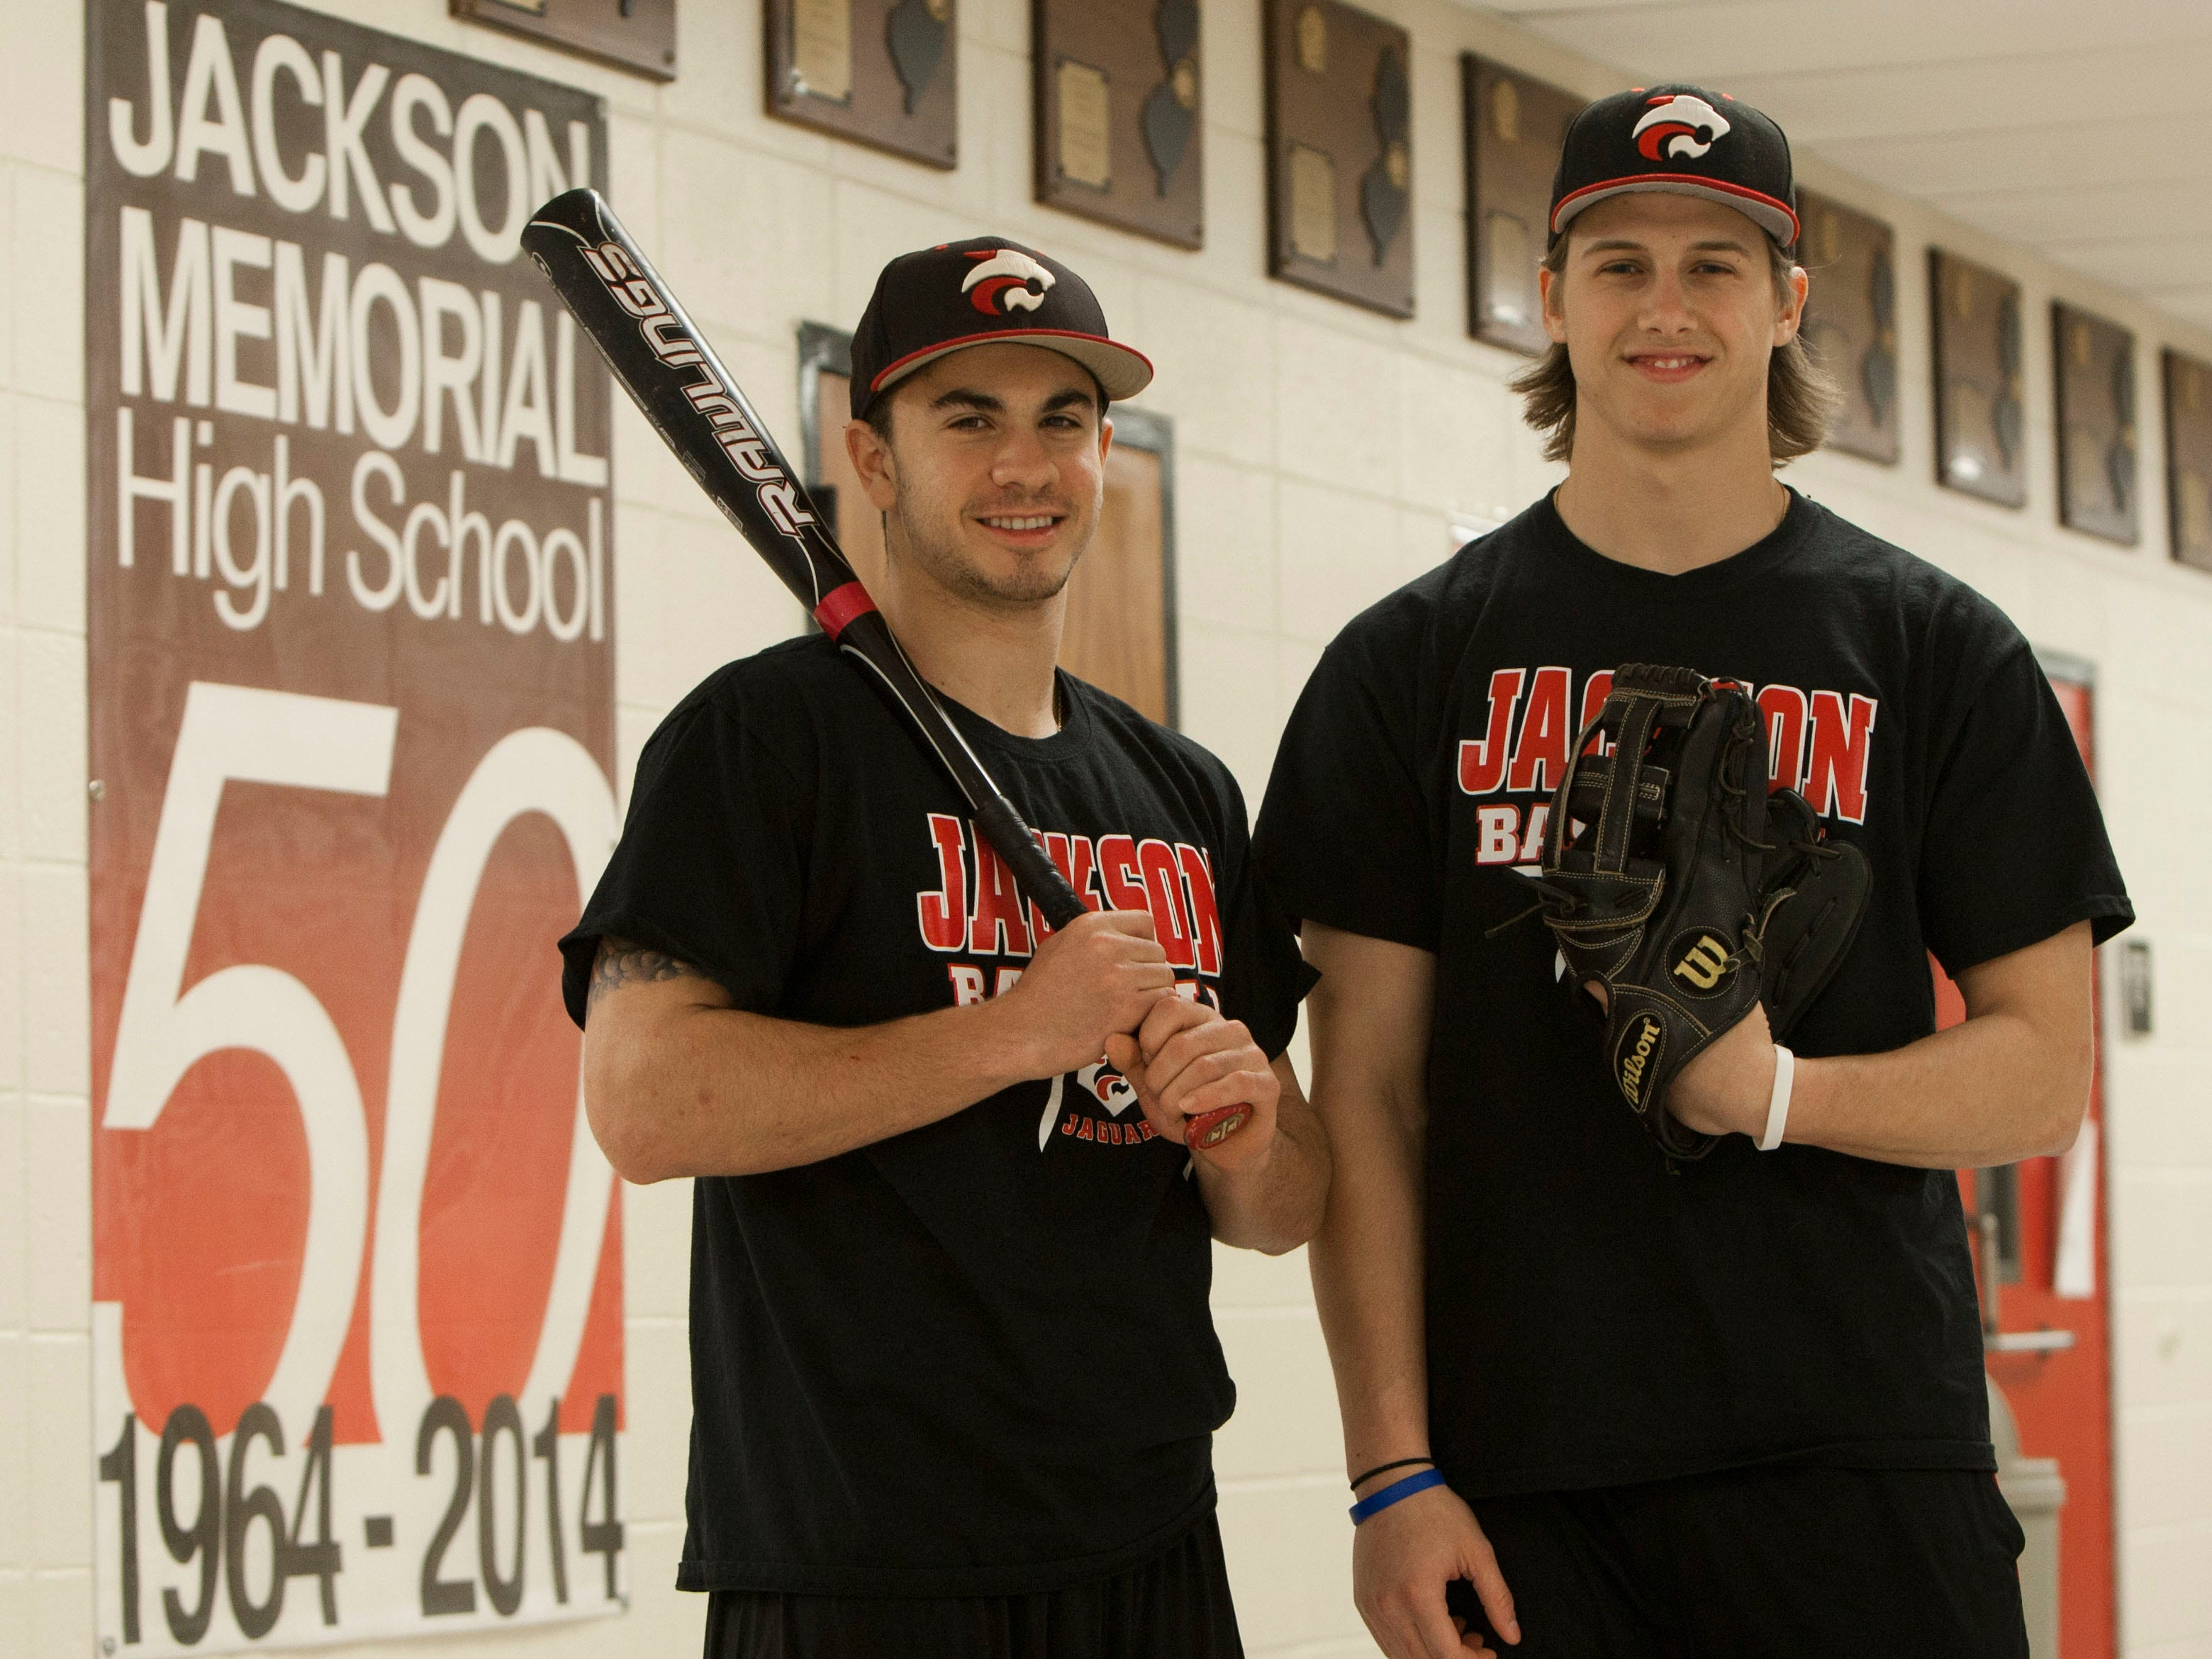 Senior shortstop/pitcherBrandon Janofsky (left) and senior center fielder Joe DeMaio (right) will be key players for Jackson Memorial as the Jaguars look to defend the NJSIAA Group IV championship